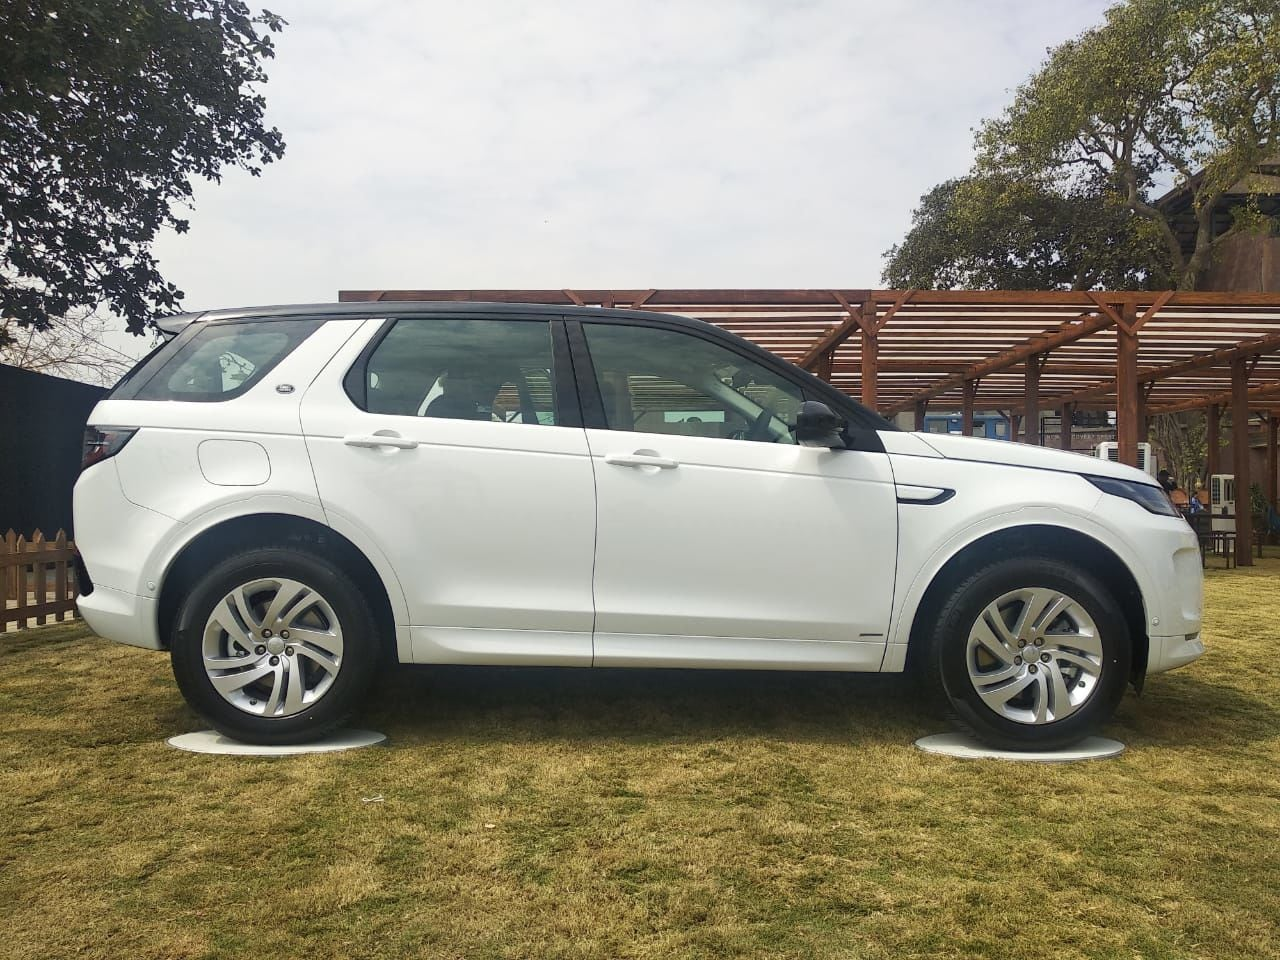 The new Discovery Sport stands 4,600 mm in length, 2,173 mm in width (including side mirrors), height of 1,724 mm and has a wheelbase measuring 2,741 mm